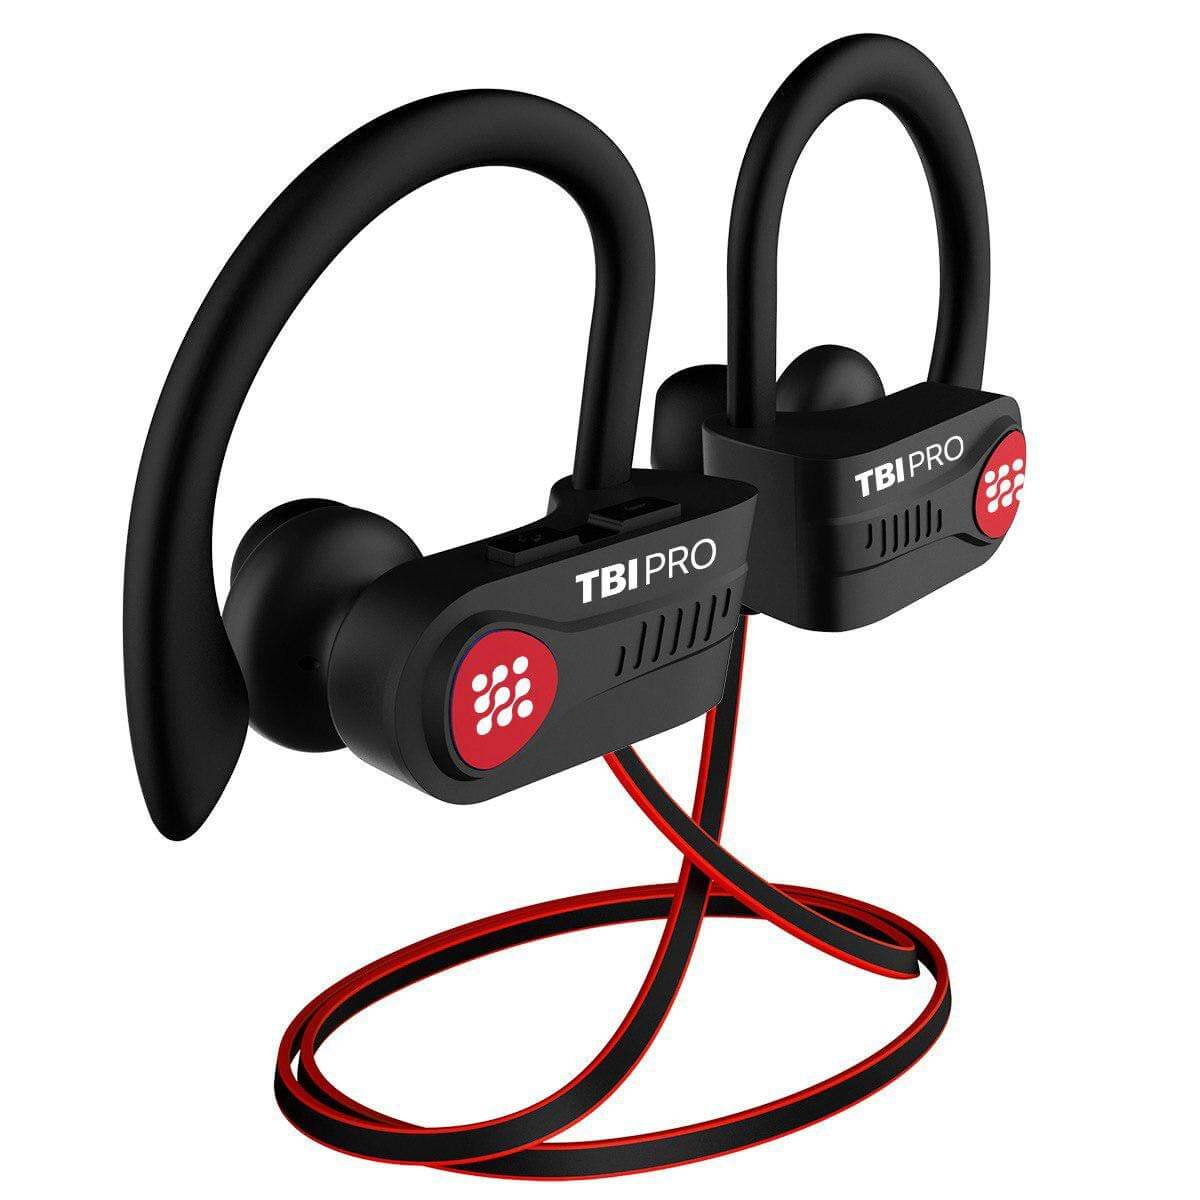 TBI Pro Wireless Sports Headphones for Swimming